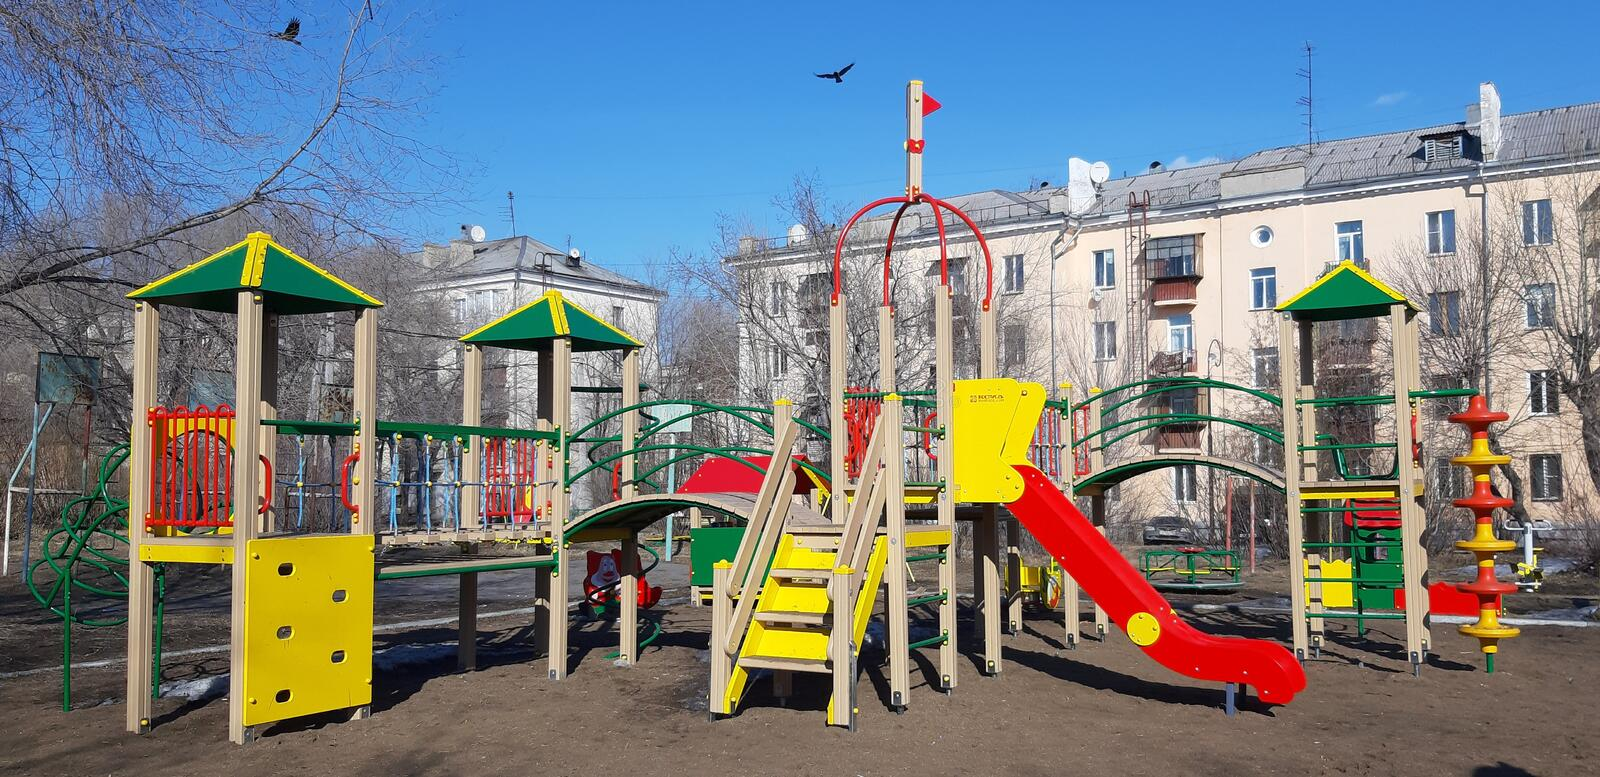 Playground built in the spring stock photo